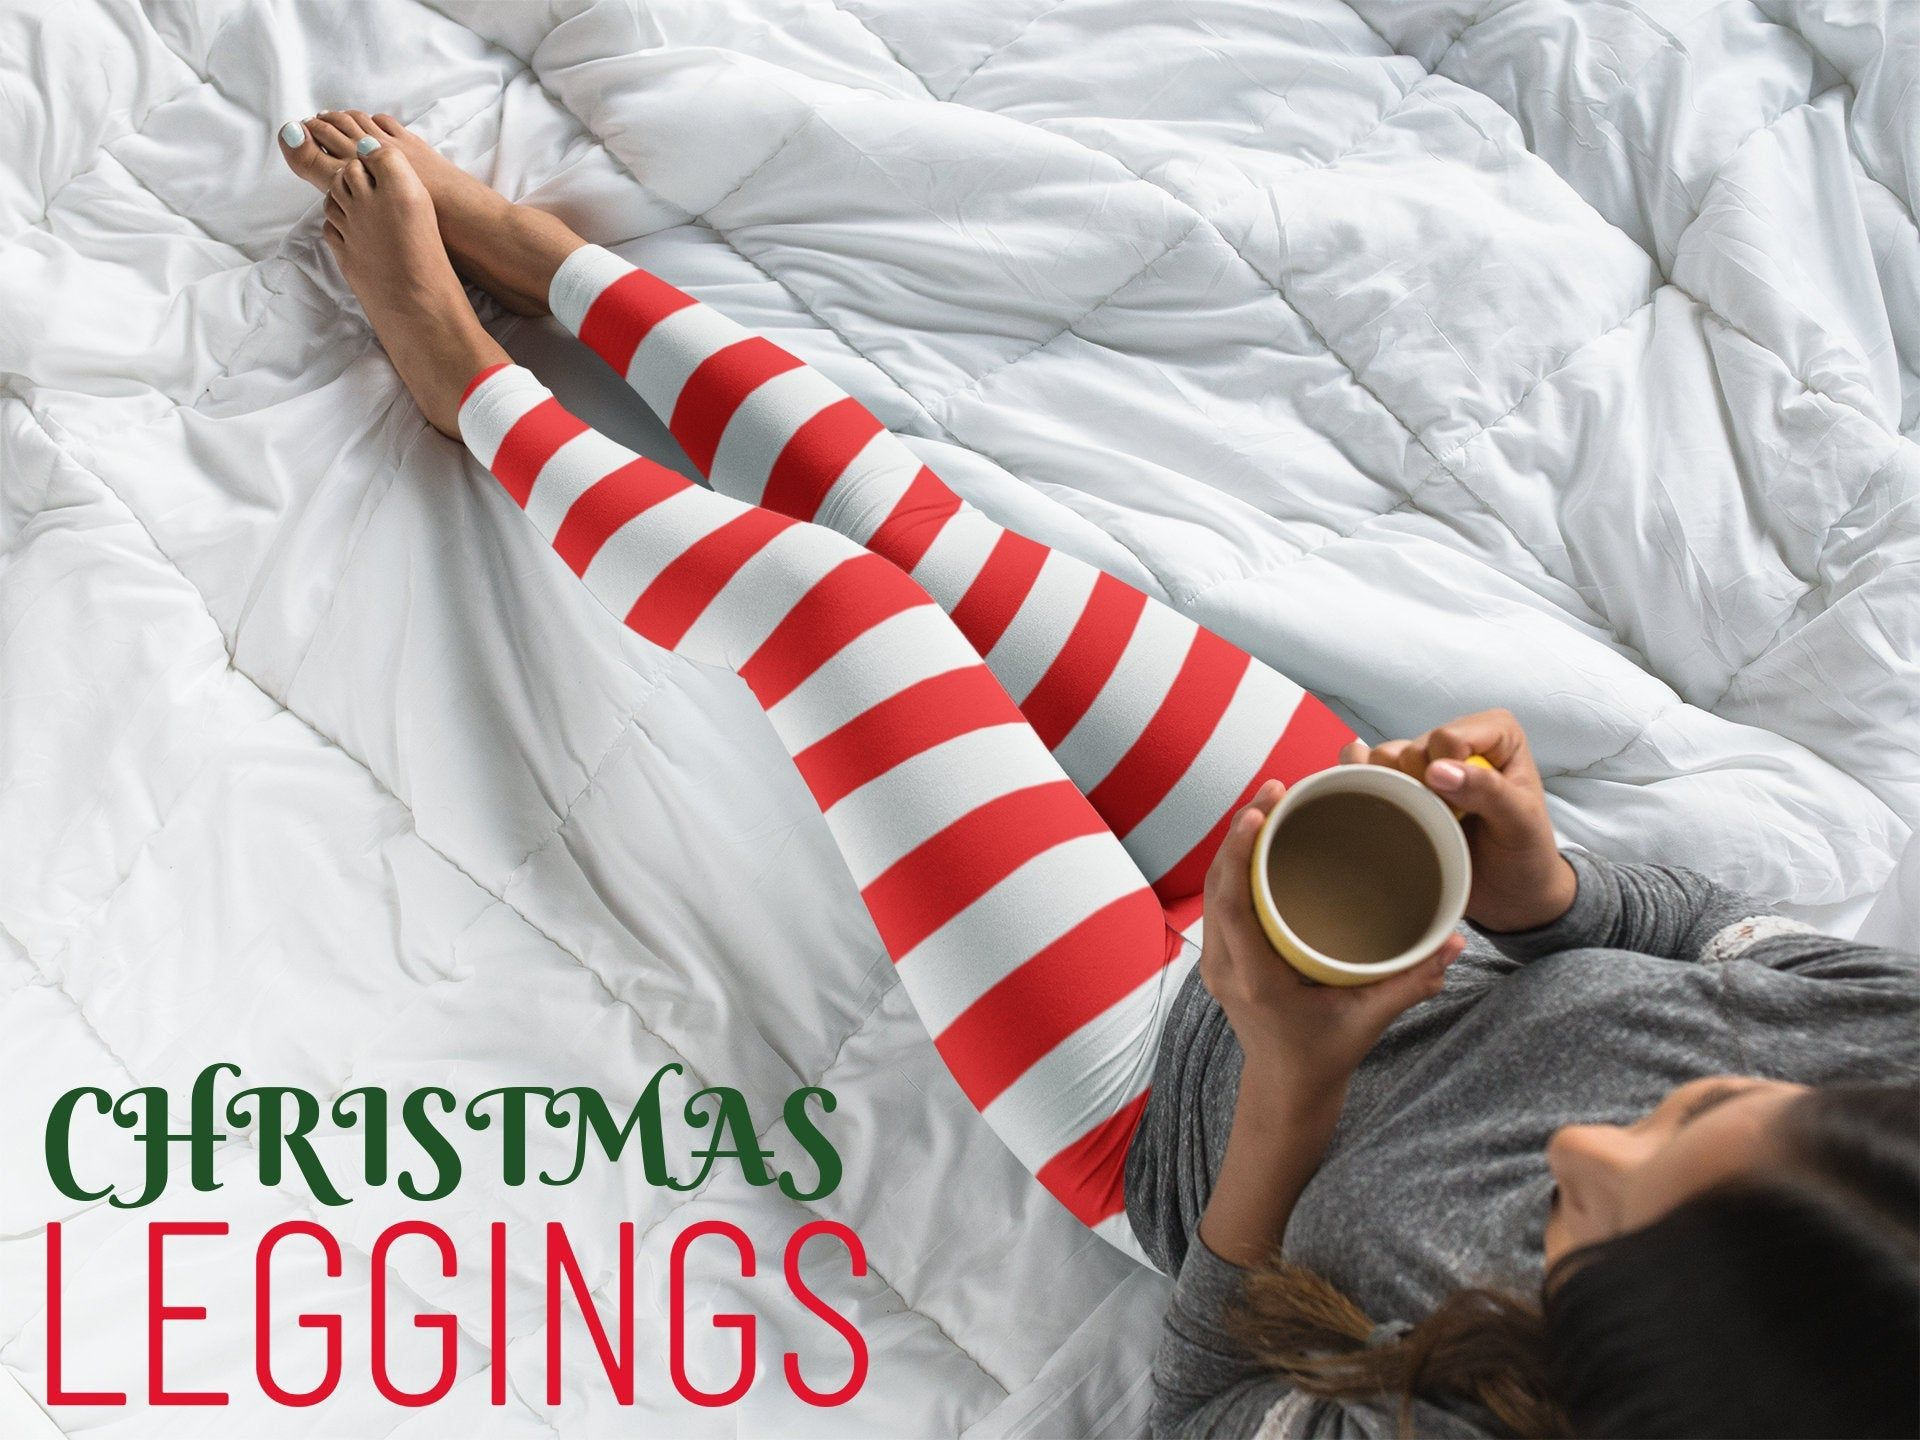 CANDY CANE Striped LEGGINGS Christmas Leggings Striped Leggings for Women Striped Womens Yoga Leggings Red and White Candy Cane Yoga Pants #stripedleggings